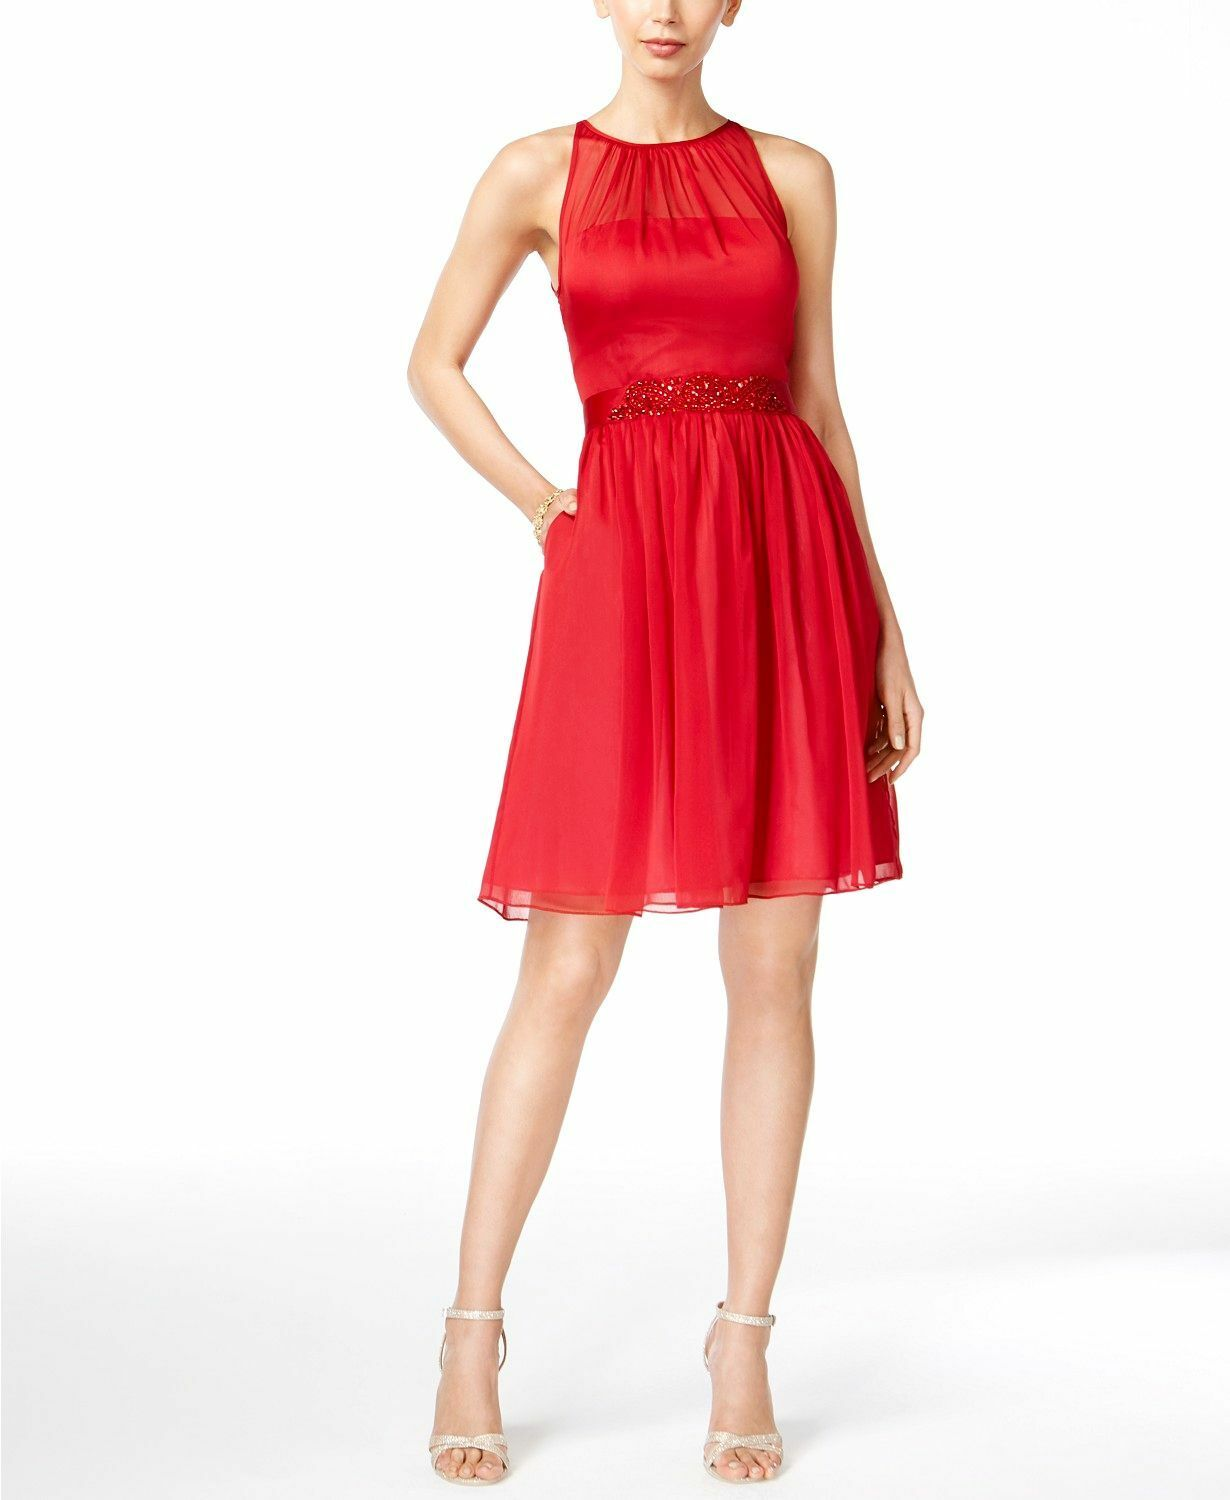 360 ADRIANNA PAPELL WOMEN'S RED SLEEVELESS HALTER BELTED STUDDED DRESS SIZE 4